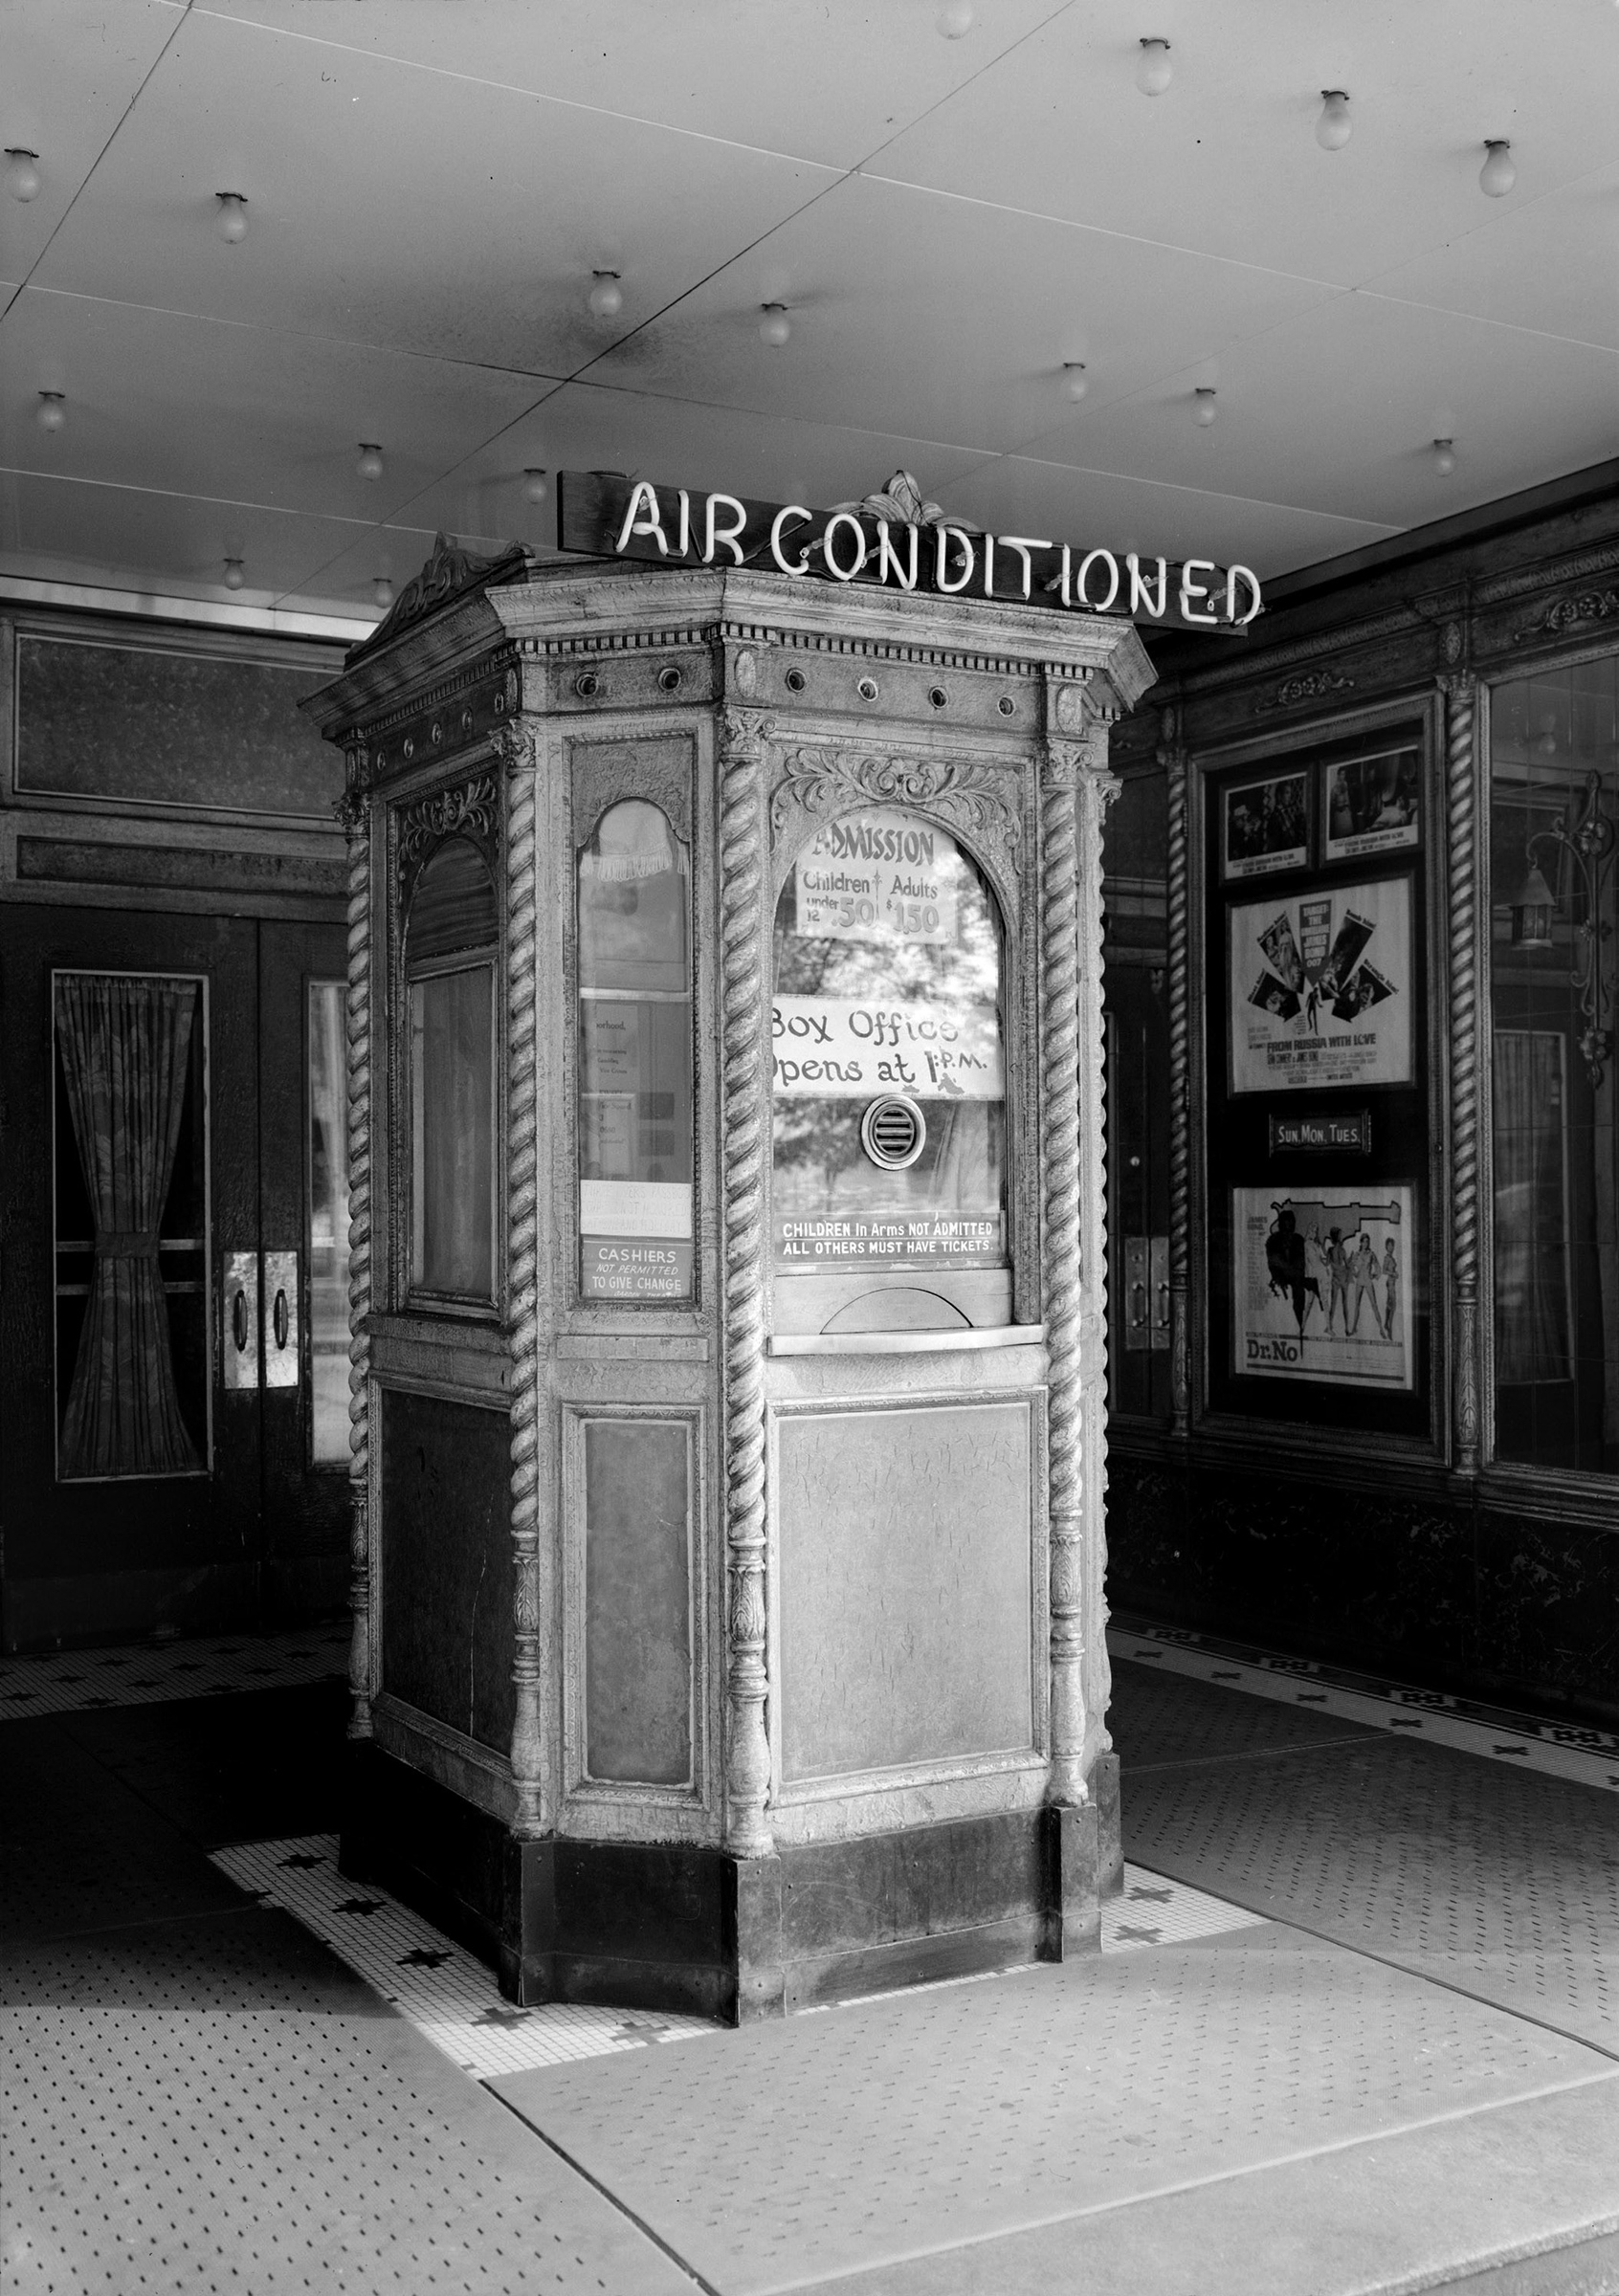 A theater's lobby advertises air conditioning to prospective movie-goers.